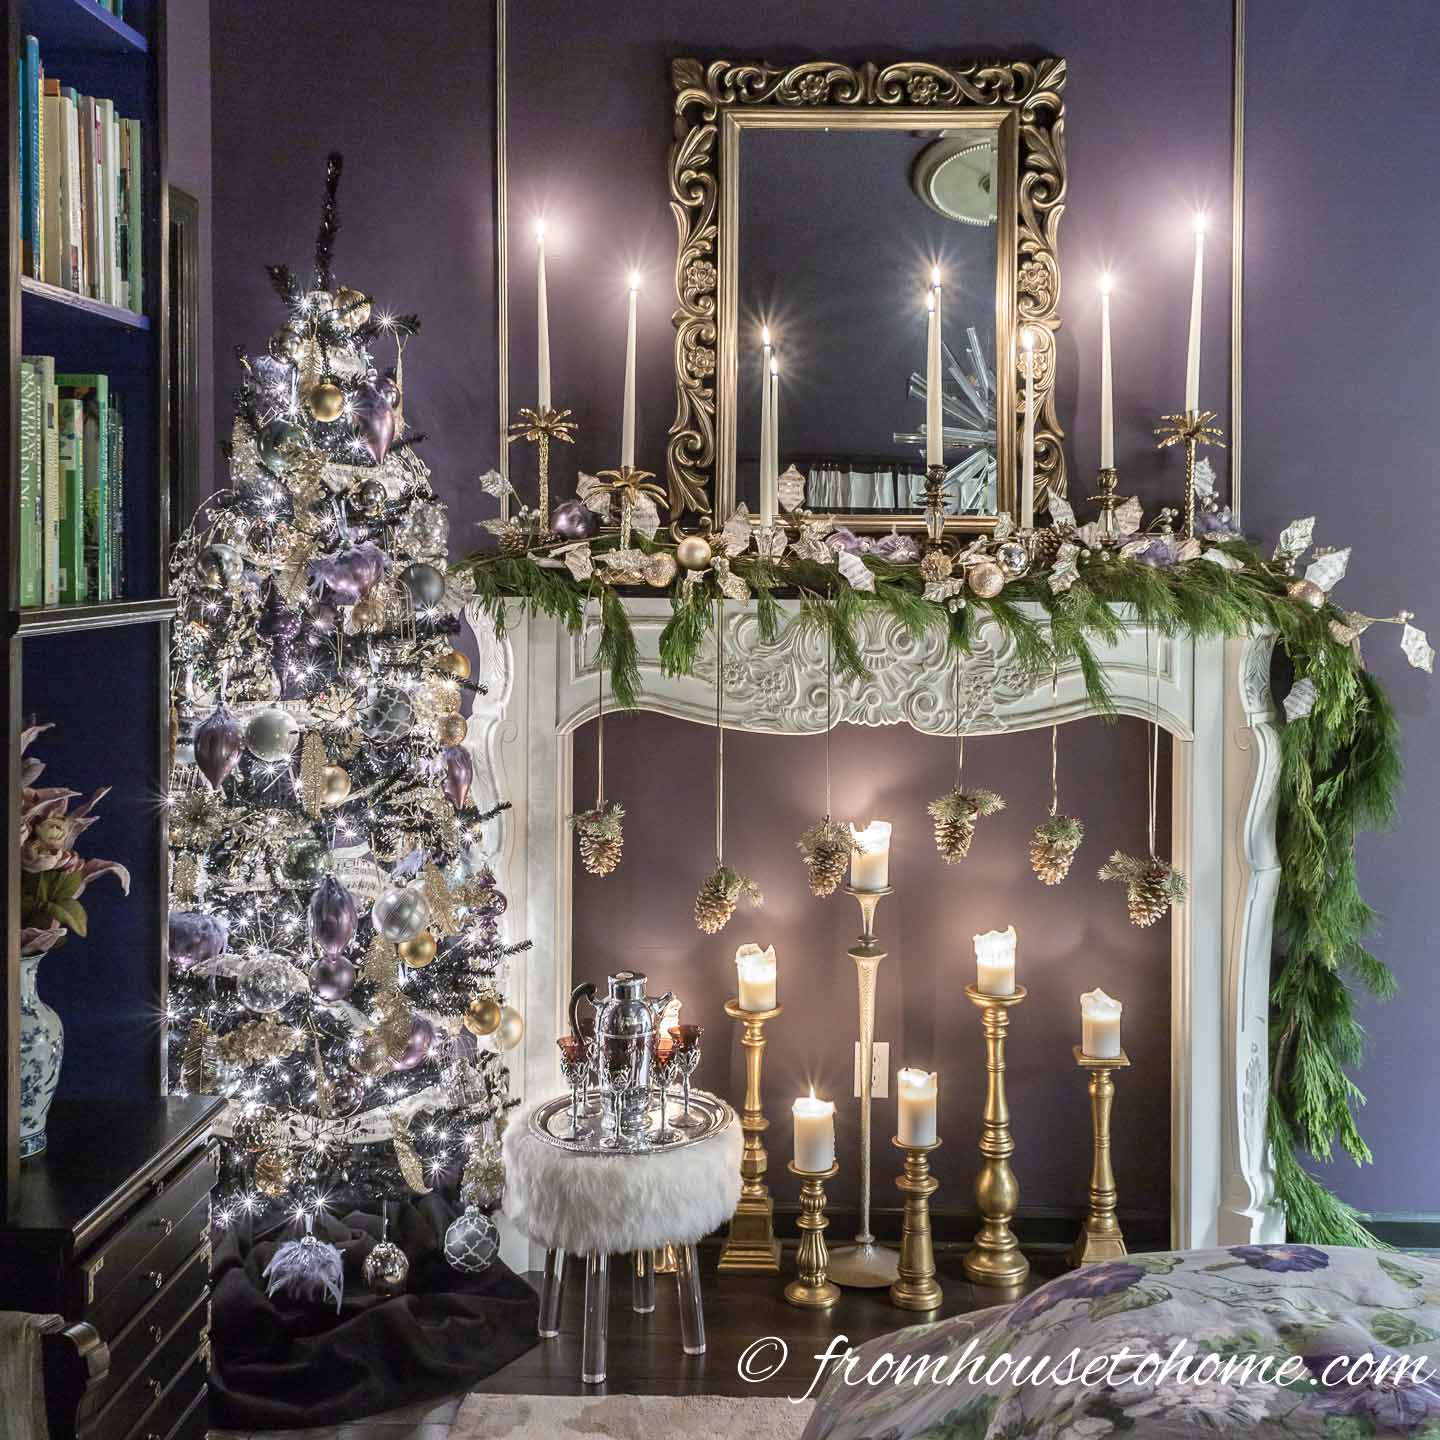 Purple And Gold Christmas Decor Ideas And 11 Other Christmas Home Tours